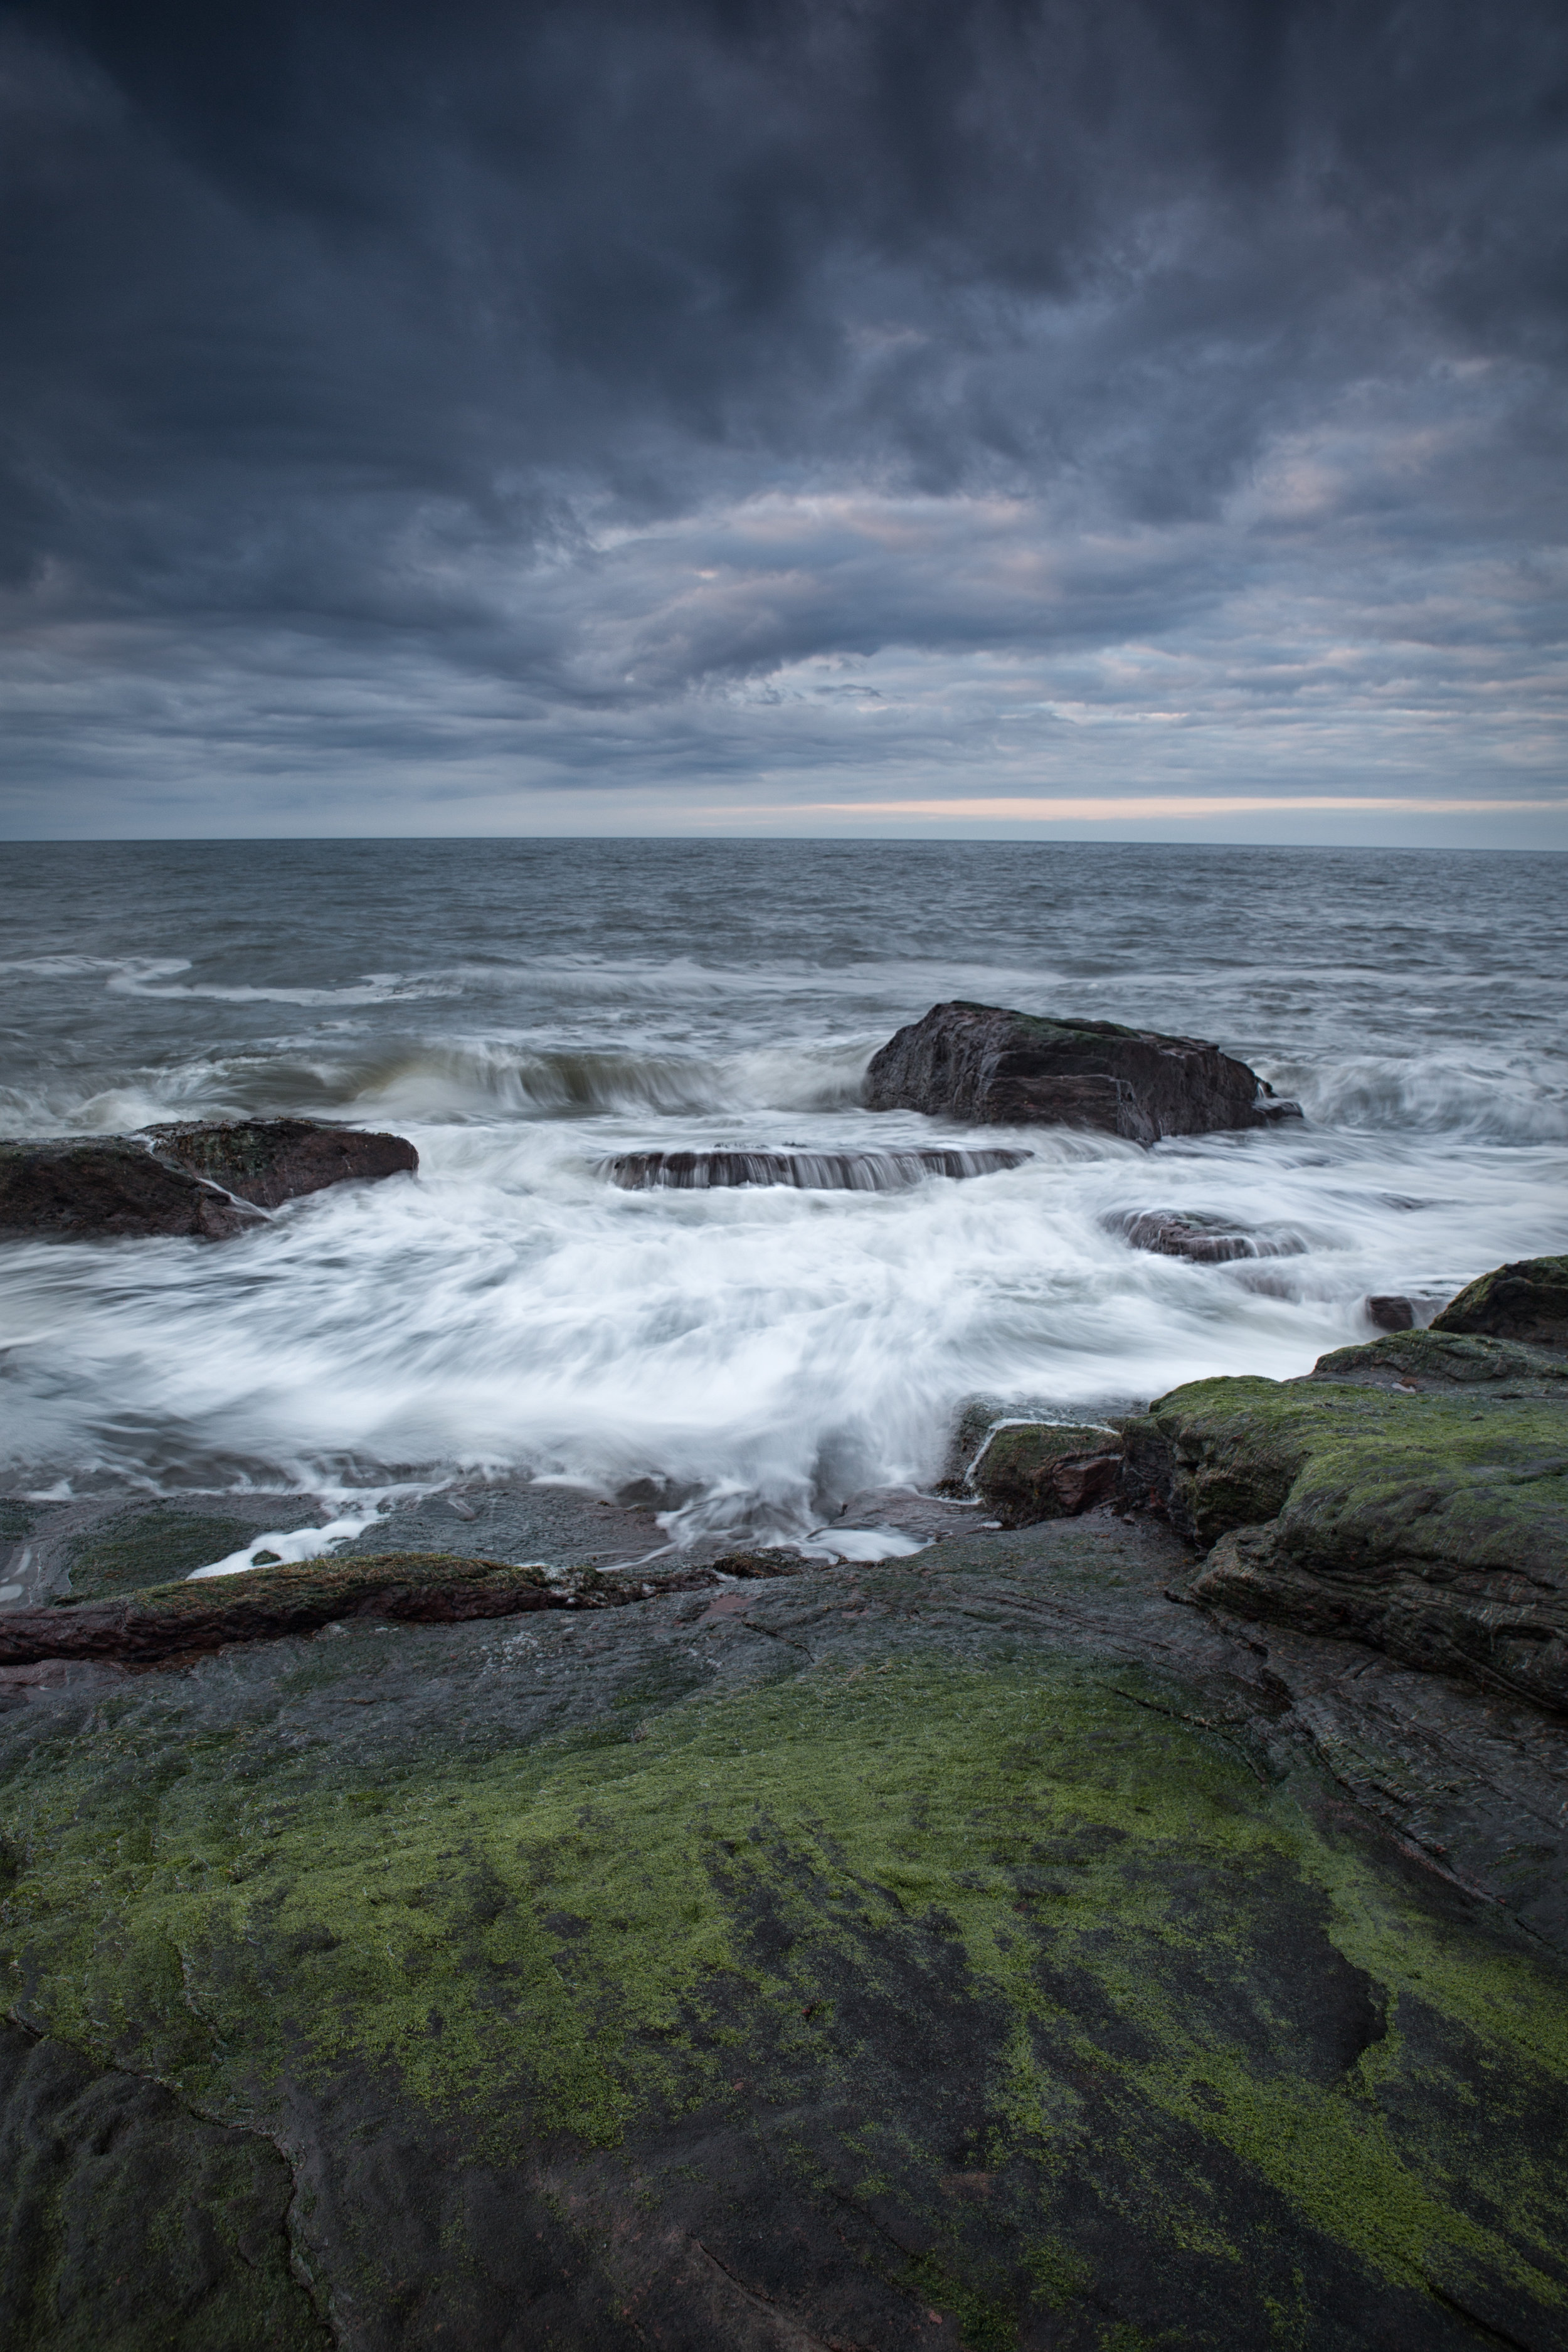 From Shore to Sea by Andy Clark